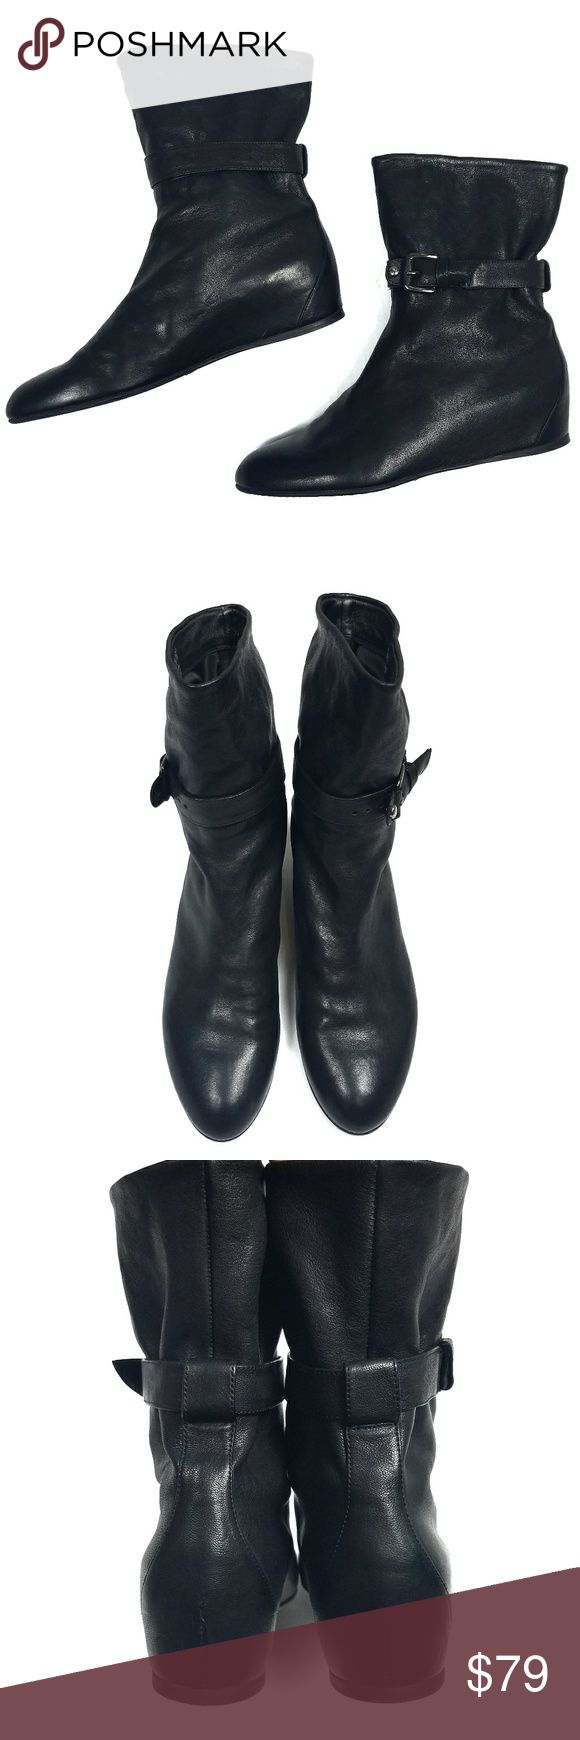 Stuart Weitzman Black Leather Ankle Boots 7M These understated Stuart  Weitzman ankle boots are made of leather and have a stretchy buckle strap  around the ...